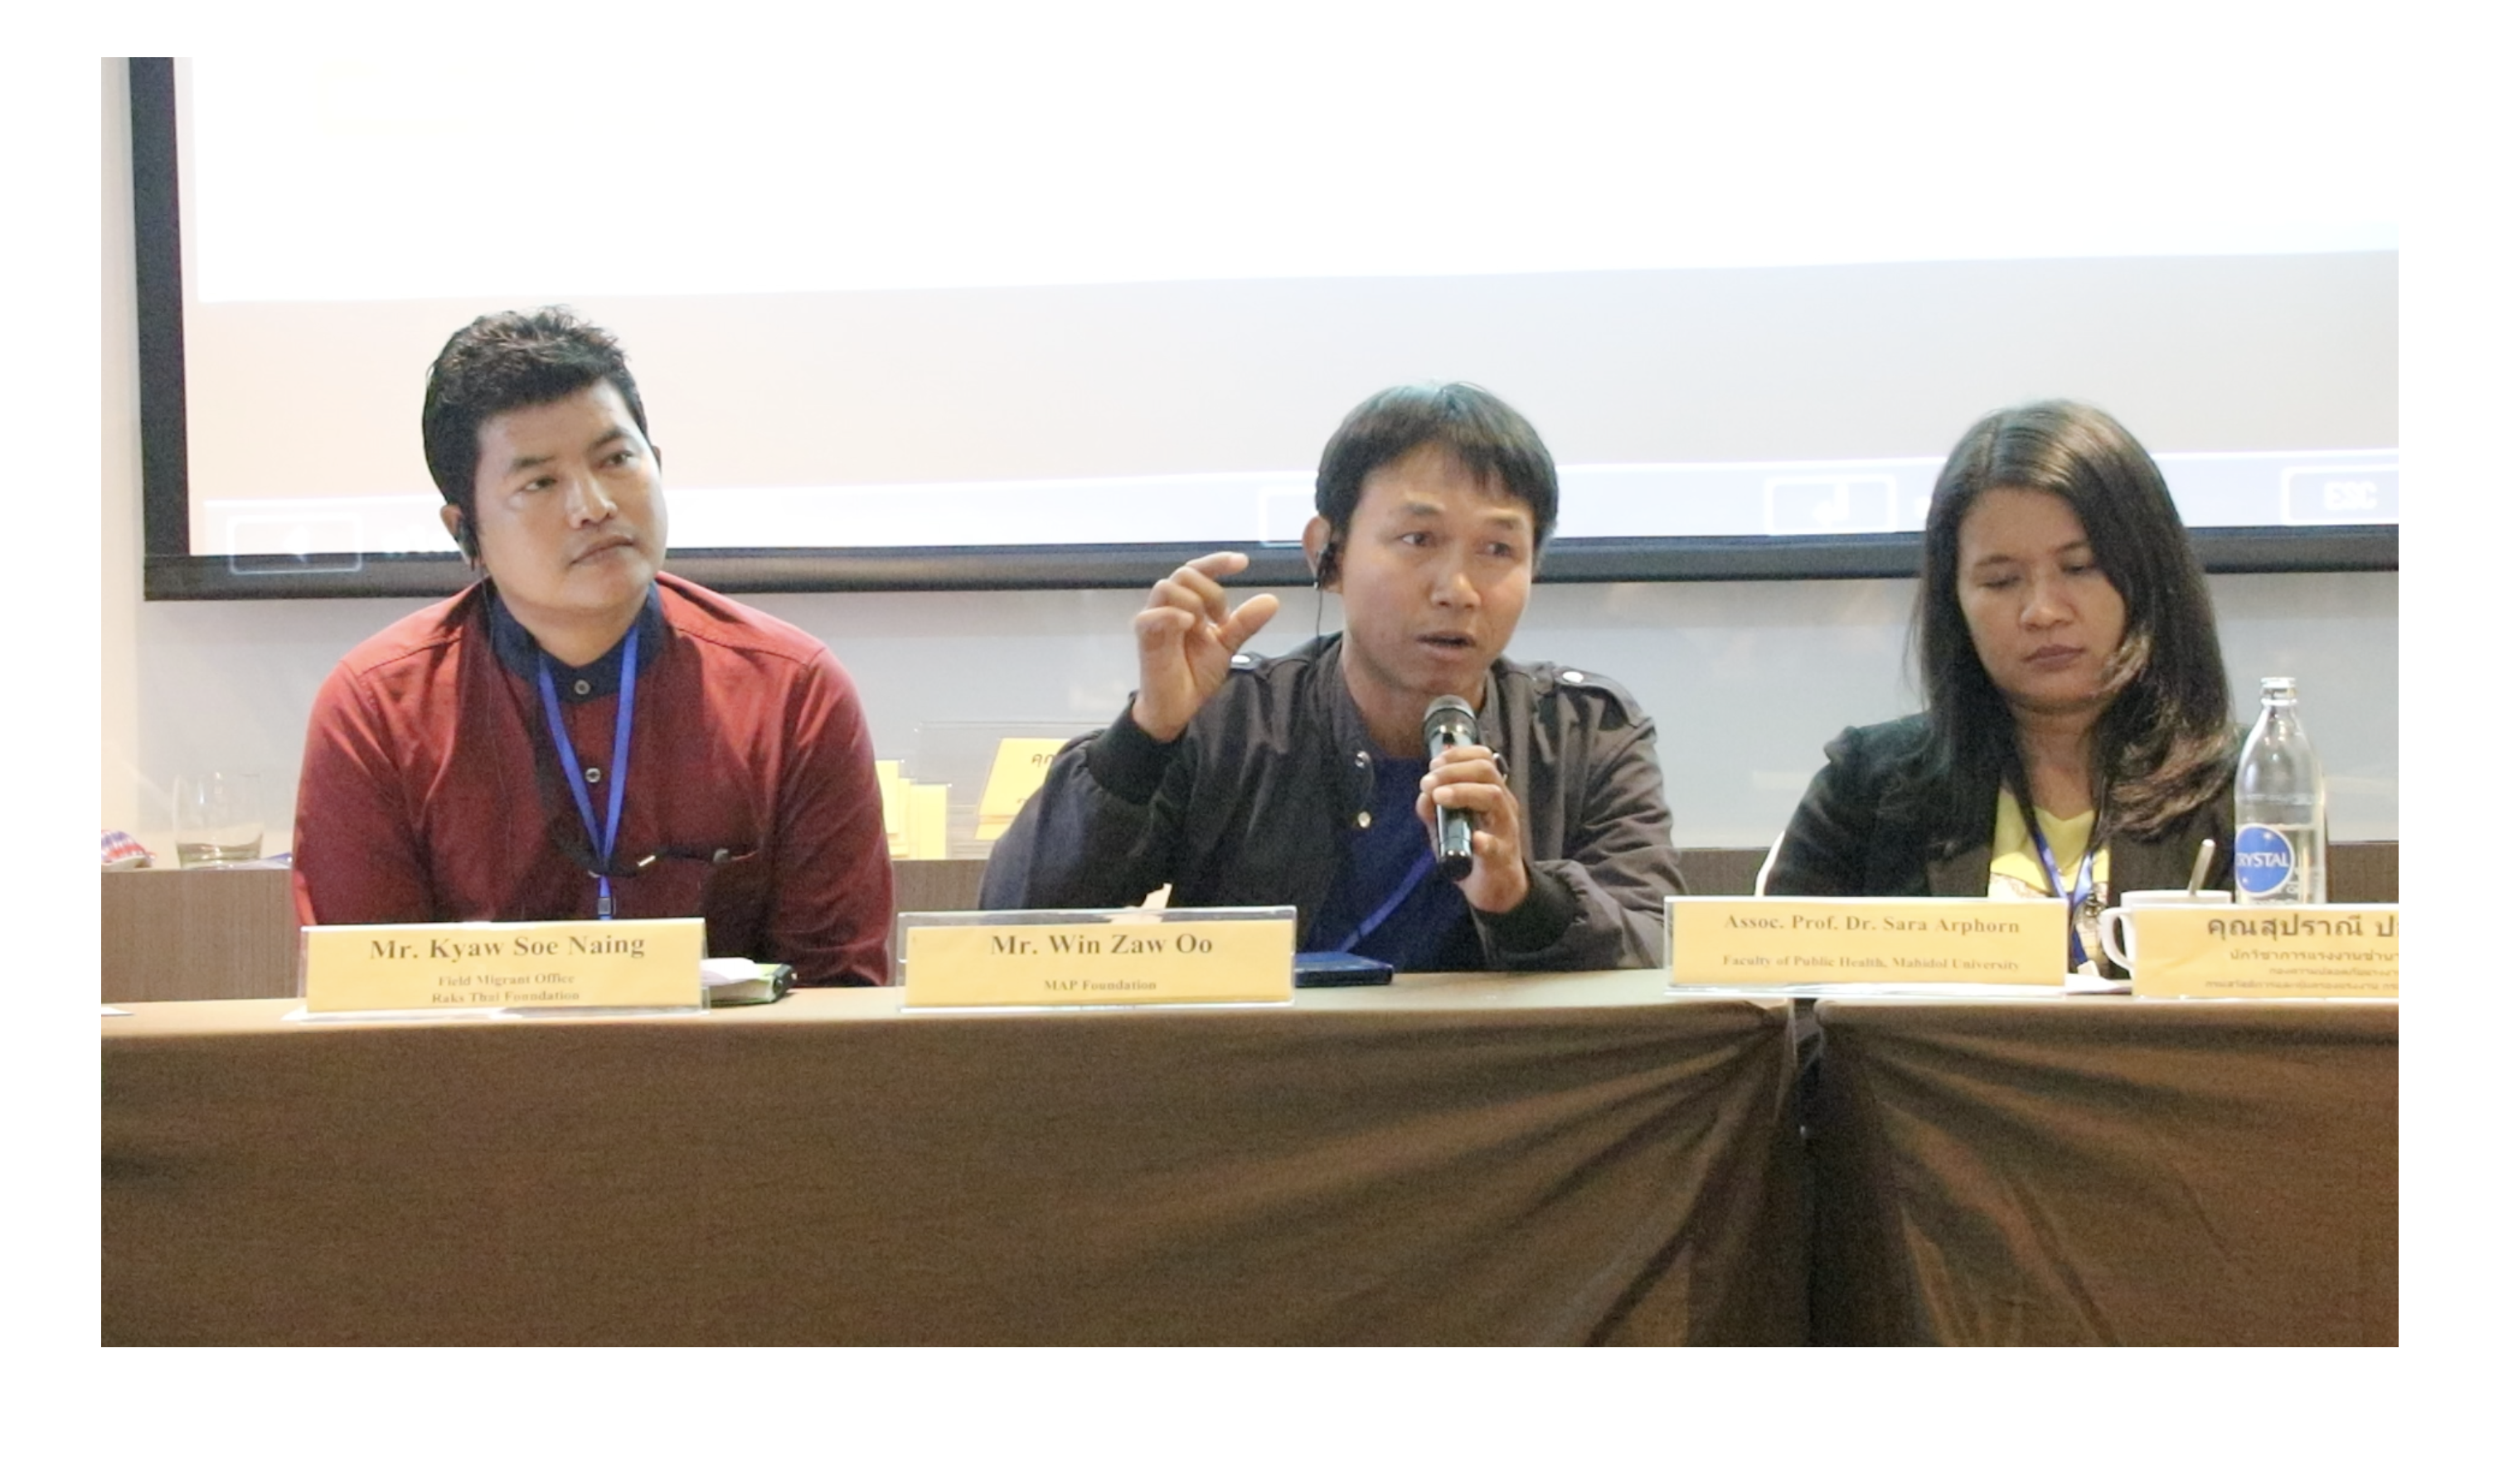 A migrant agricultural worker speaks at a panel at the Multi-Stakeholder Workshop on Migrant Agricultural Workers in Thailand, December 2019, Bangkok, Thailand